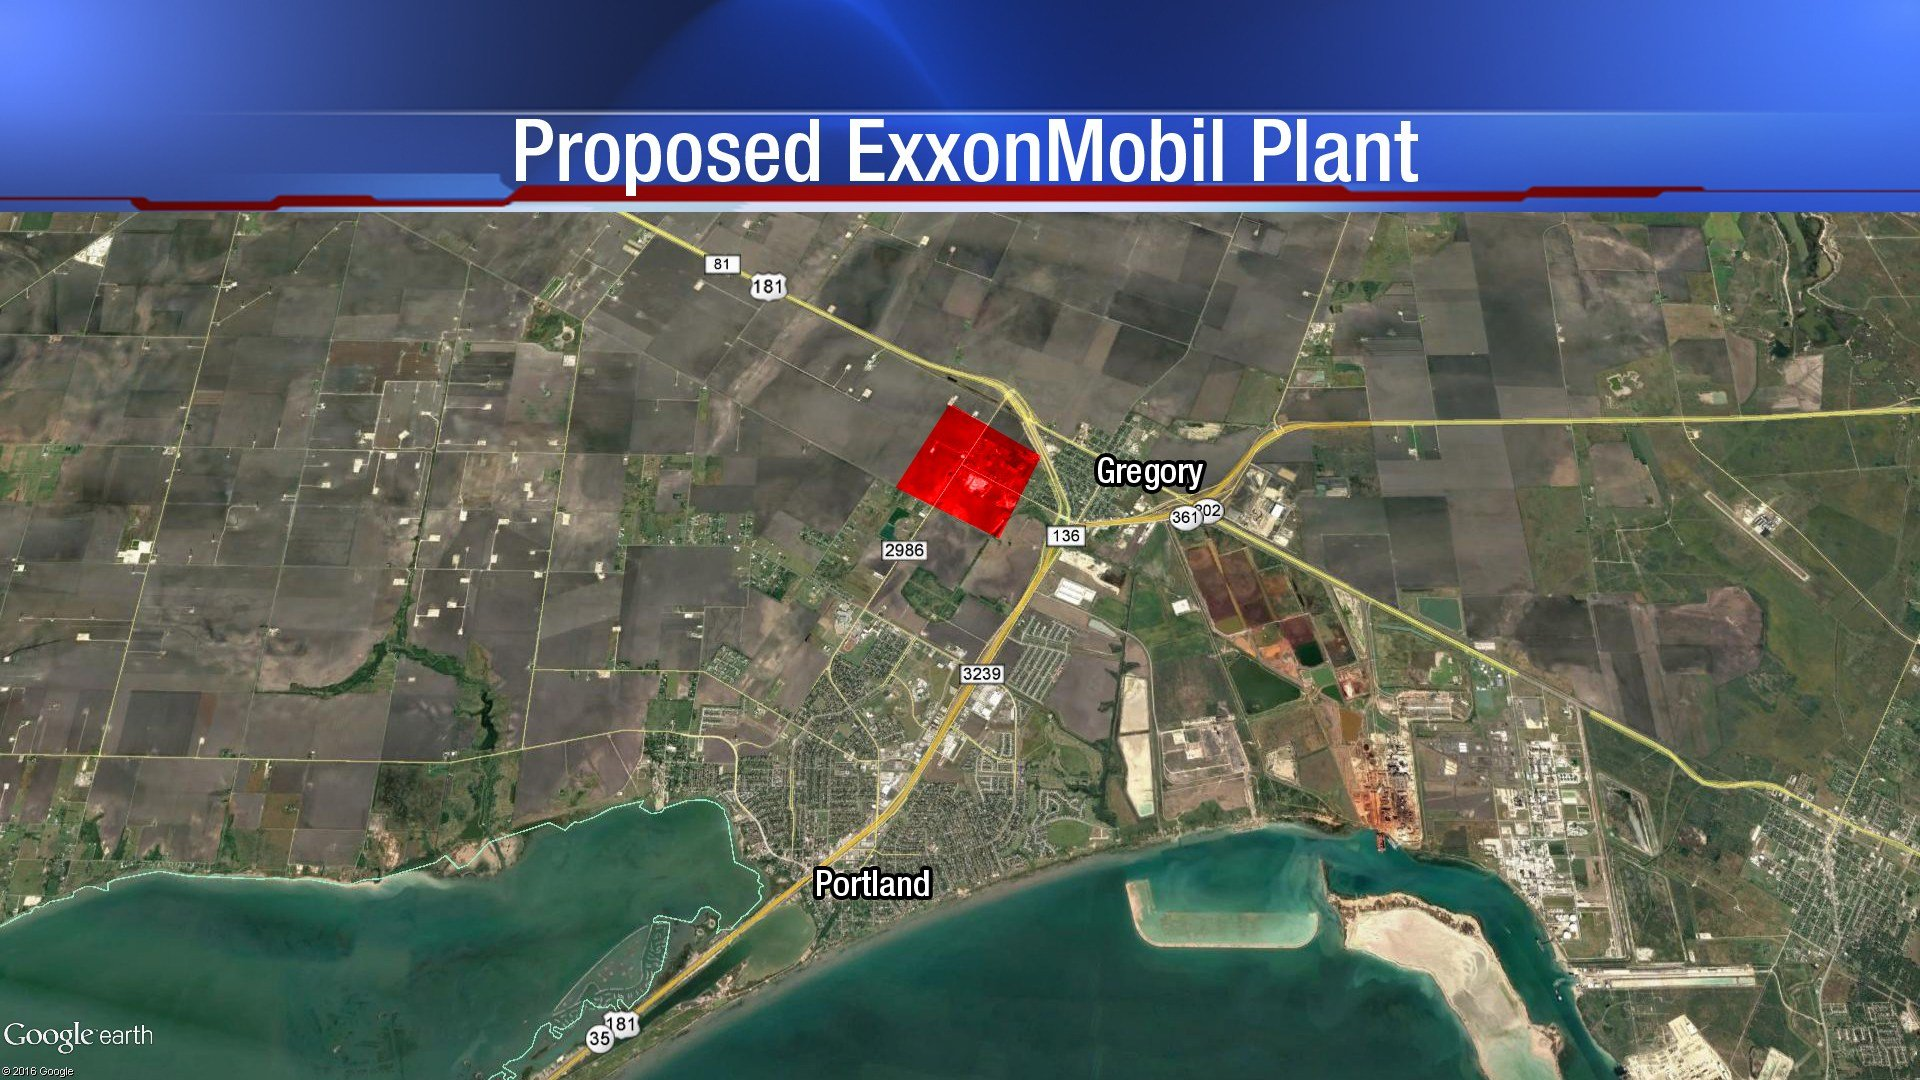 The proposed ExxonMobil Plant.